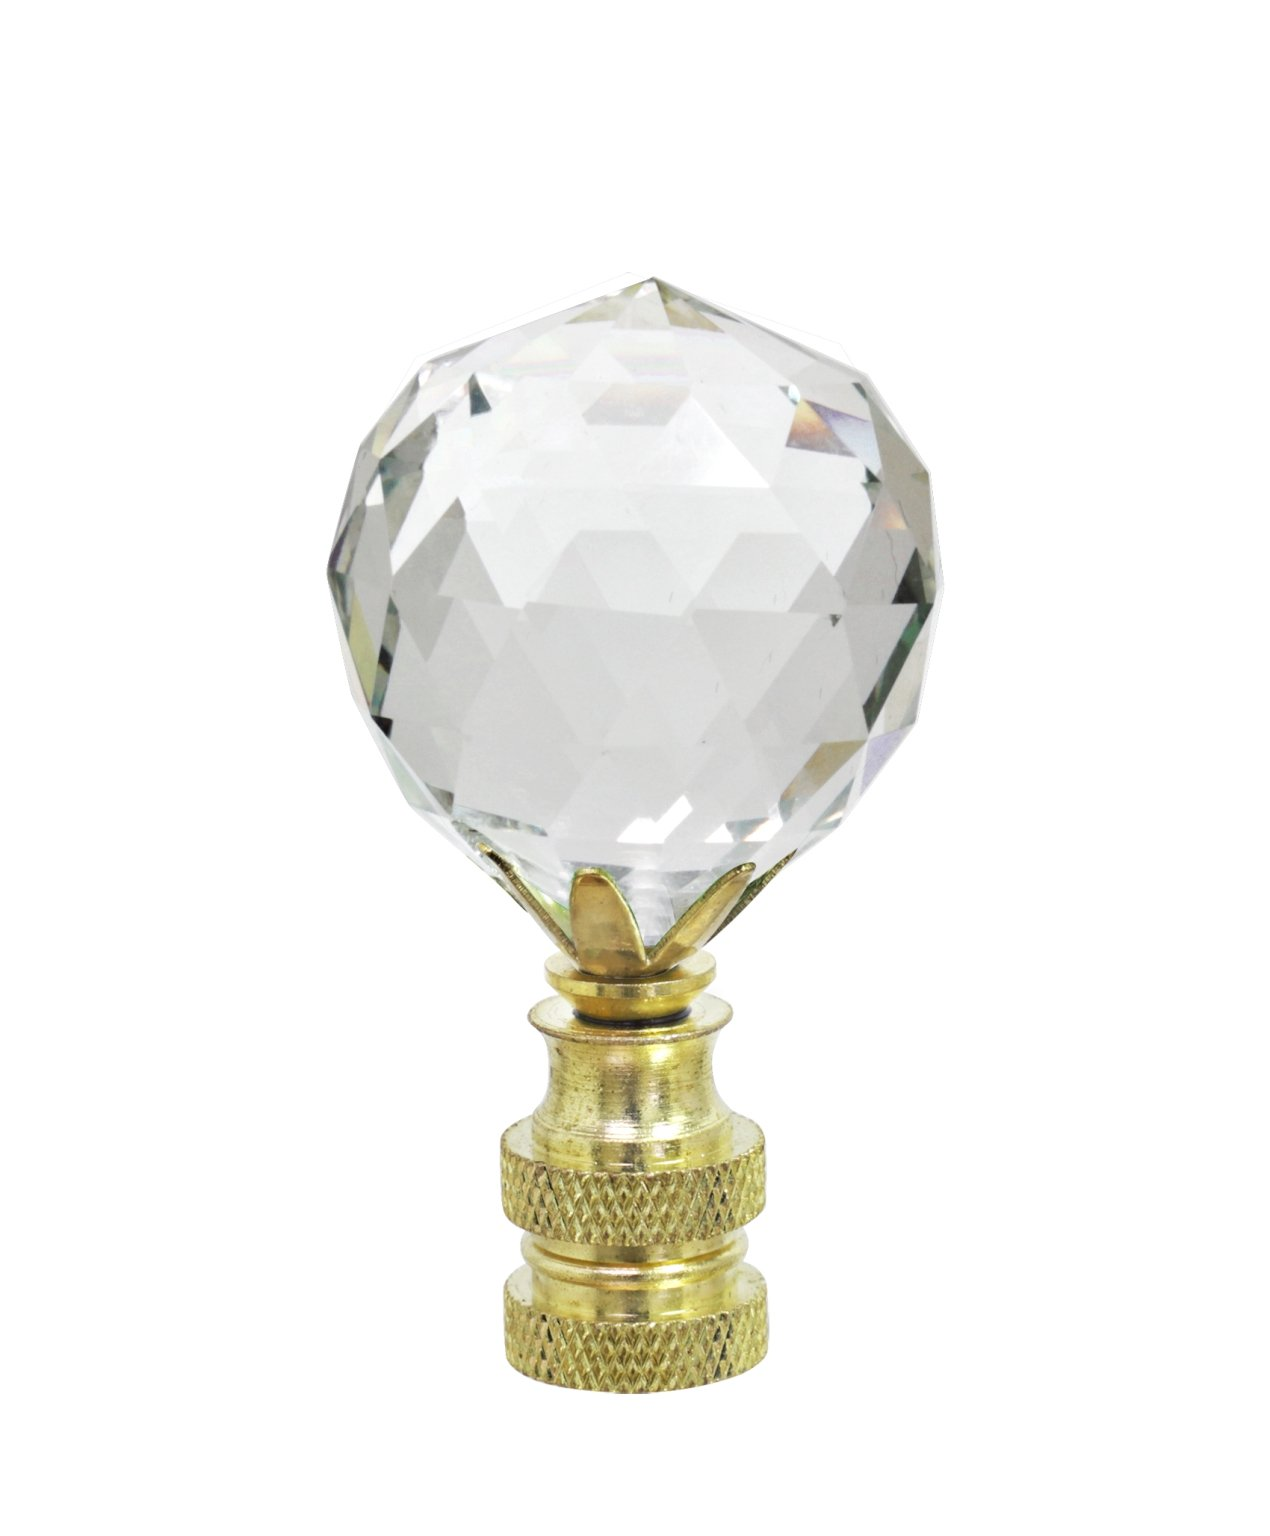 Aspen Creative 24007-11 Faceted Crystal Lamp Finial in Brass Plated Finish, 2 1/4 Tall (1), 1 PACK, Clear